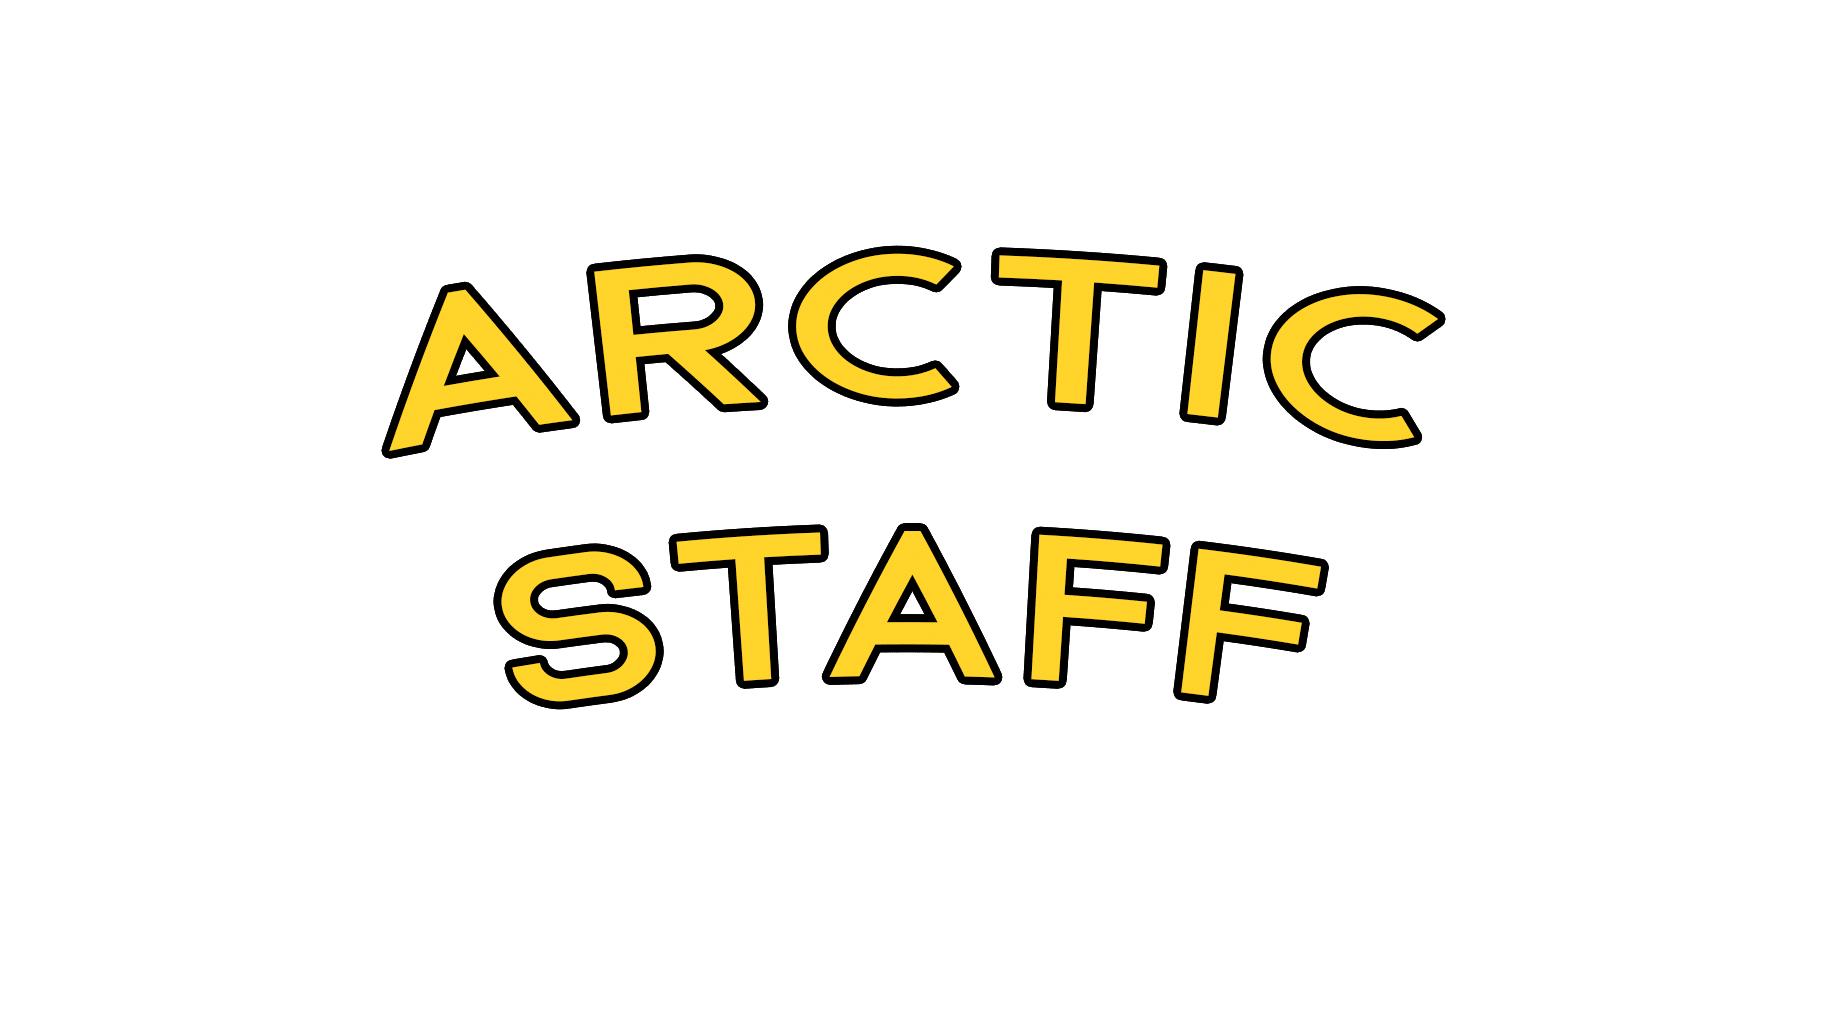 Arctic Staff Service Ltd